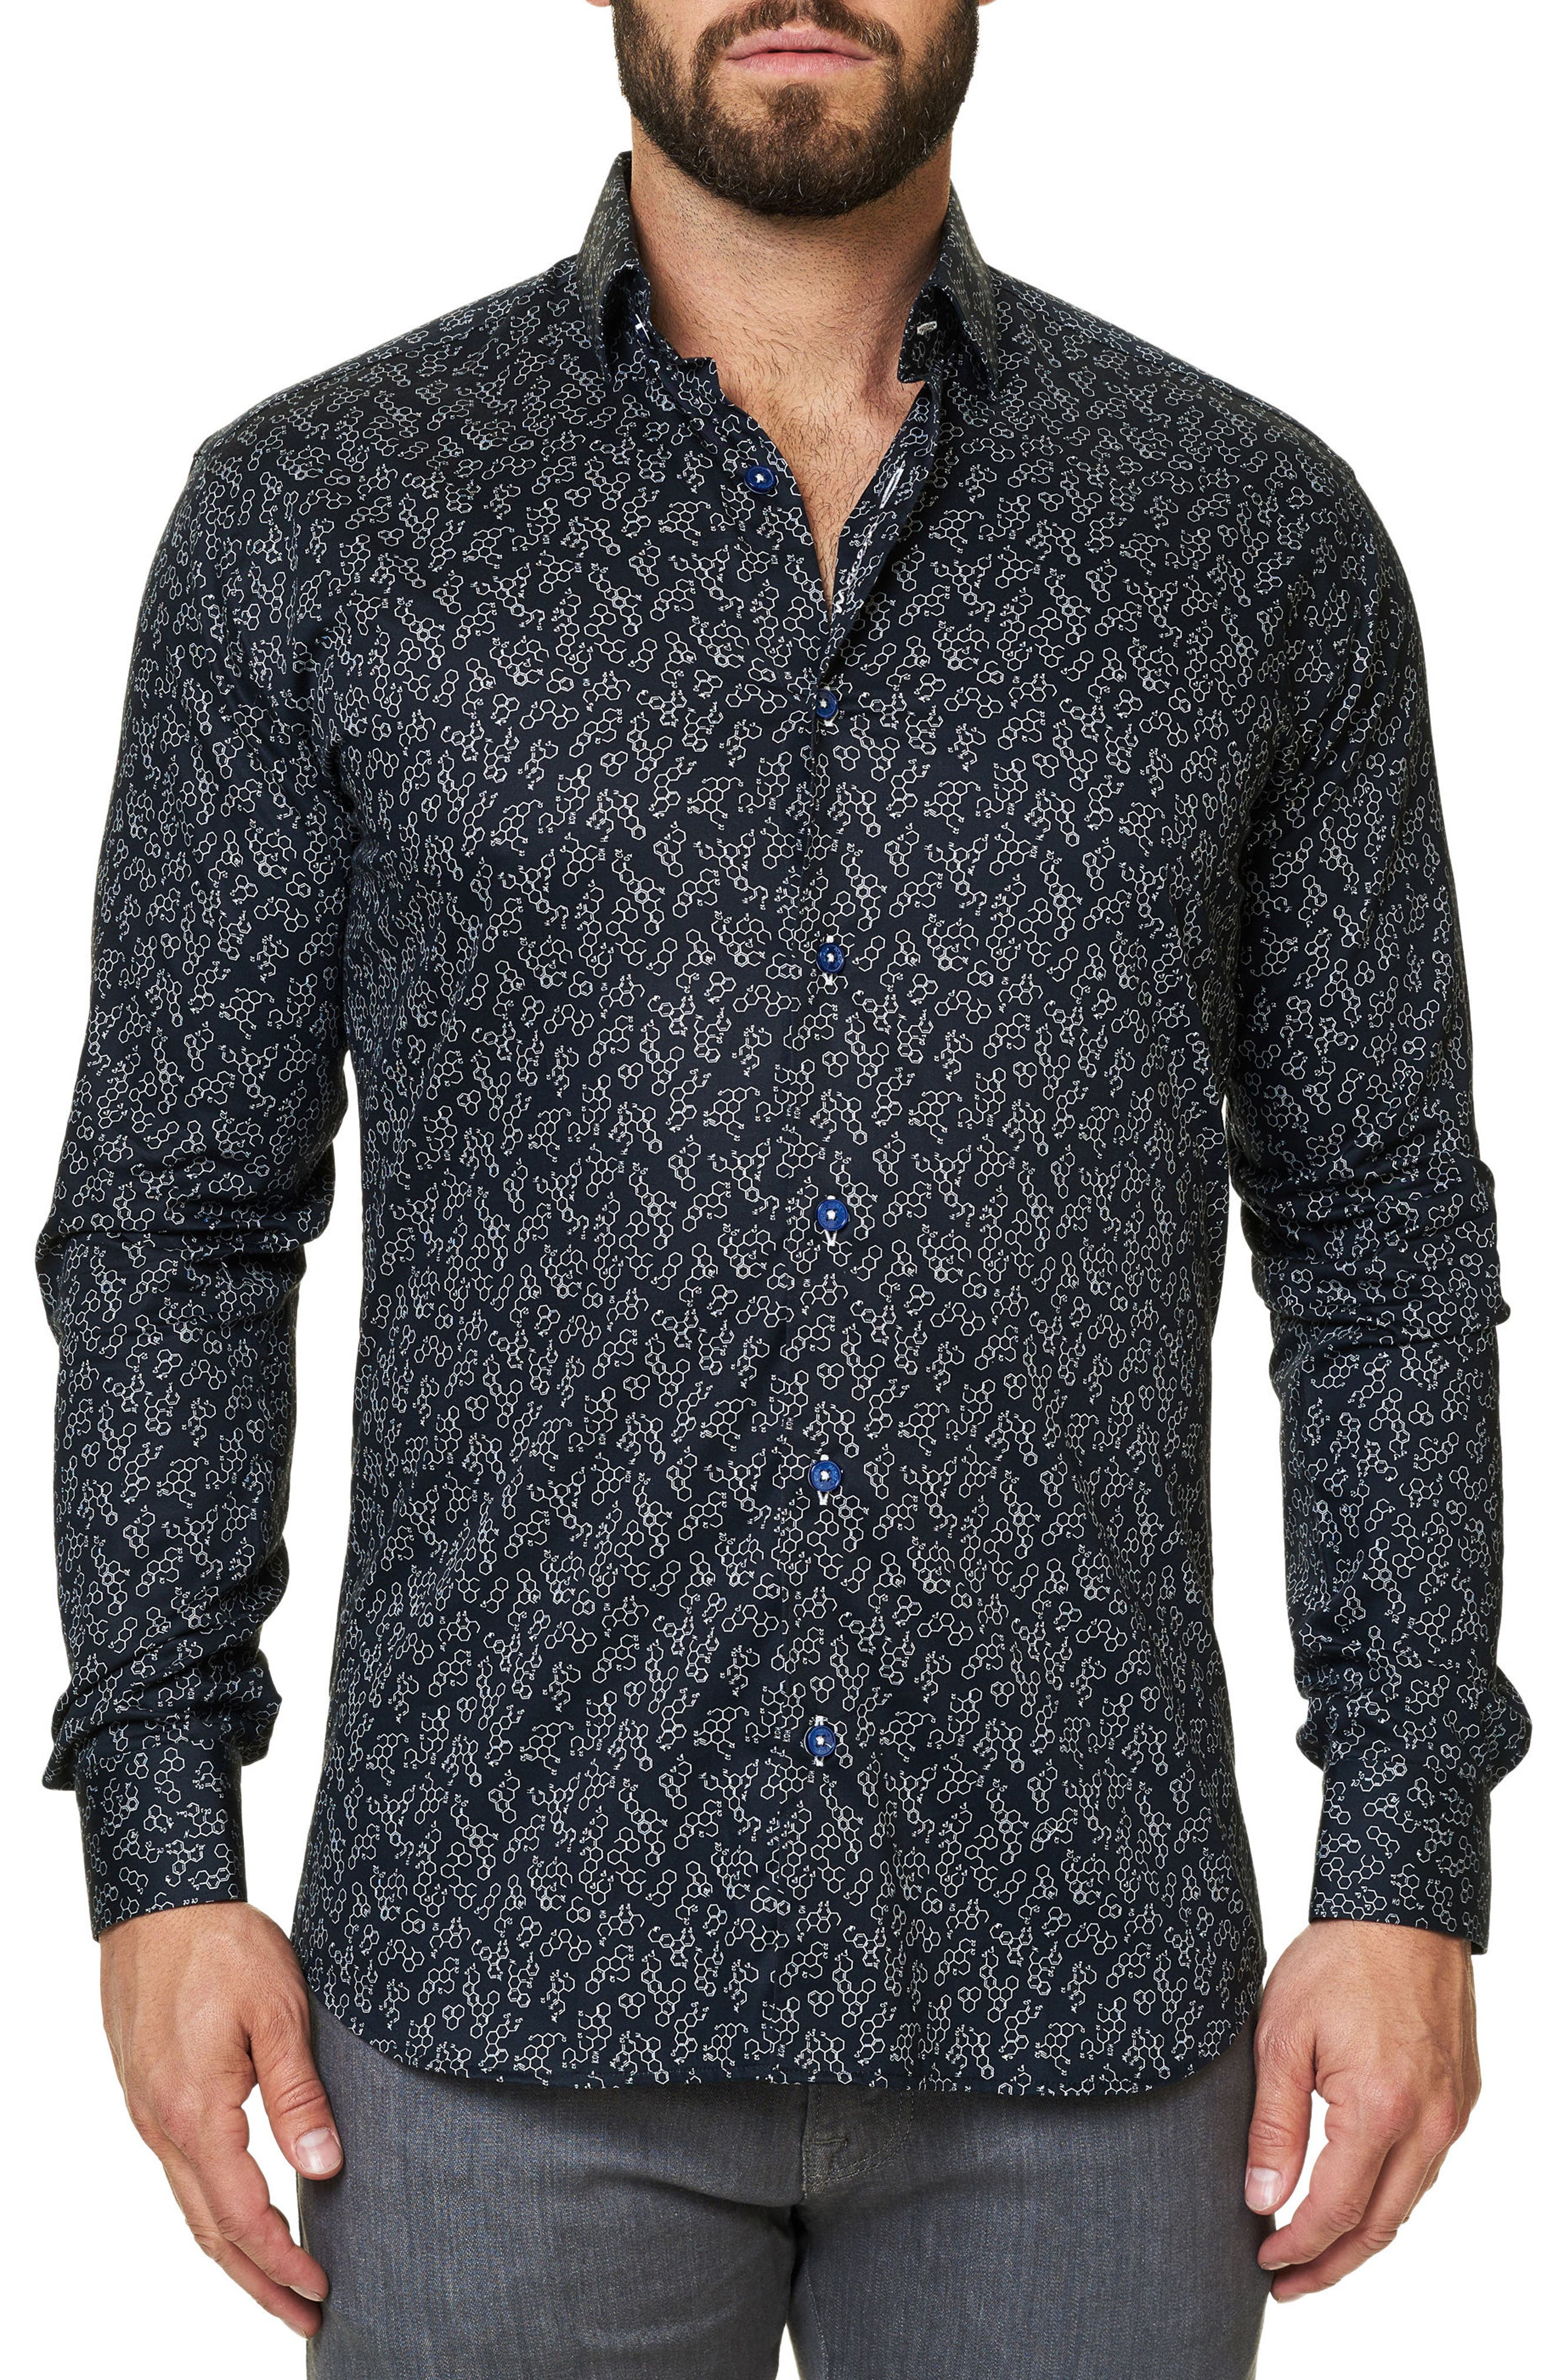 Maceoo Luxor Funky Chemistry Trim Fit Sport Shirt